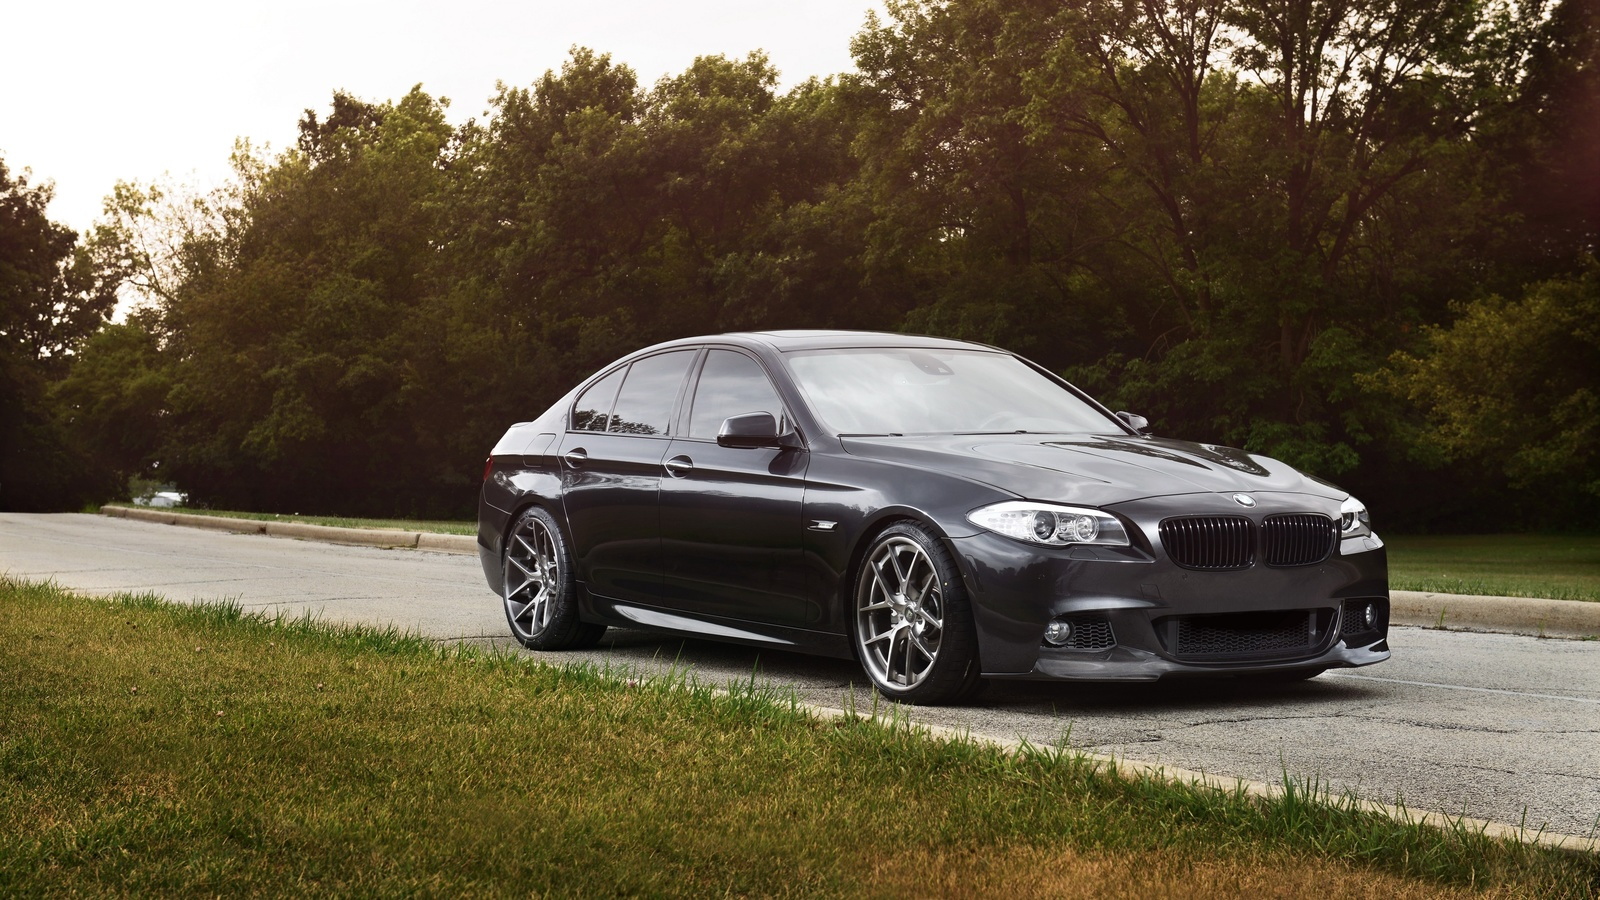 car, vehicle, gray, grass, road, bmw, bmw 5 series